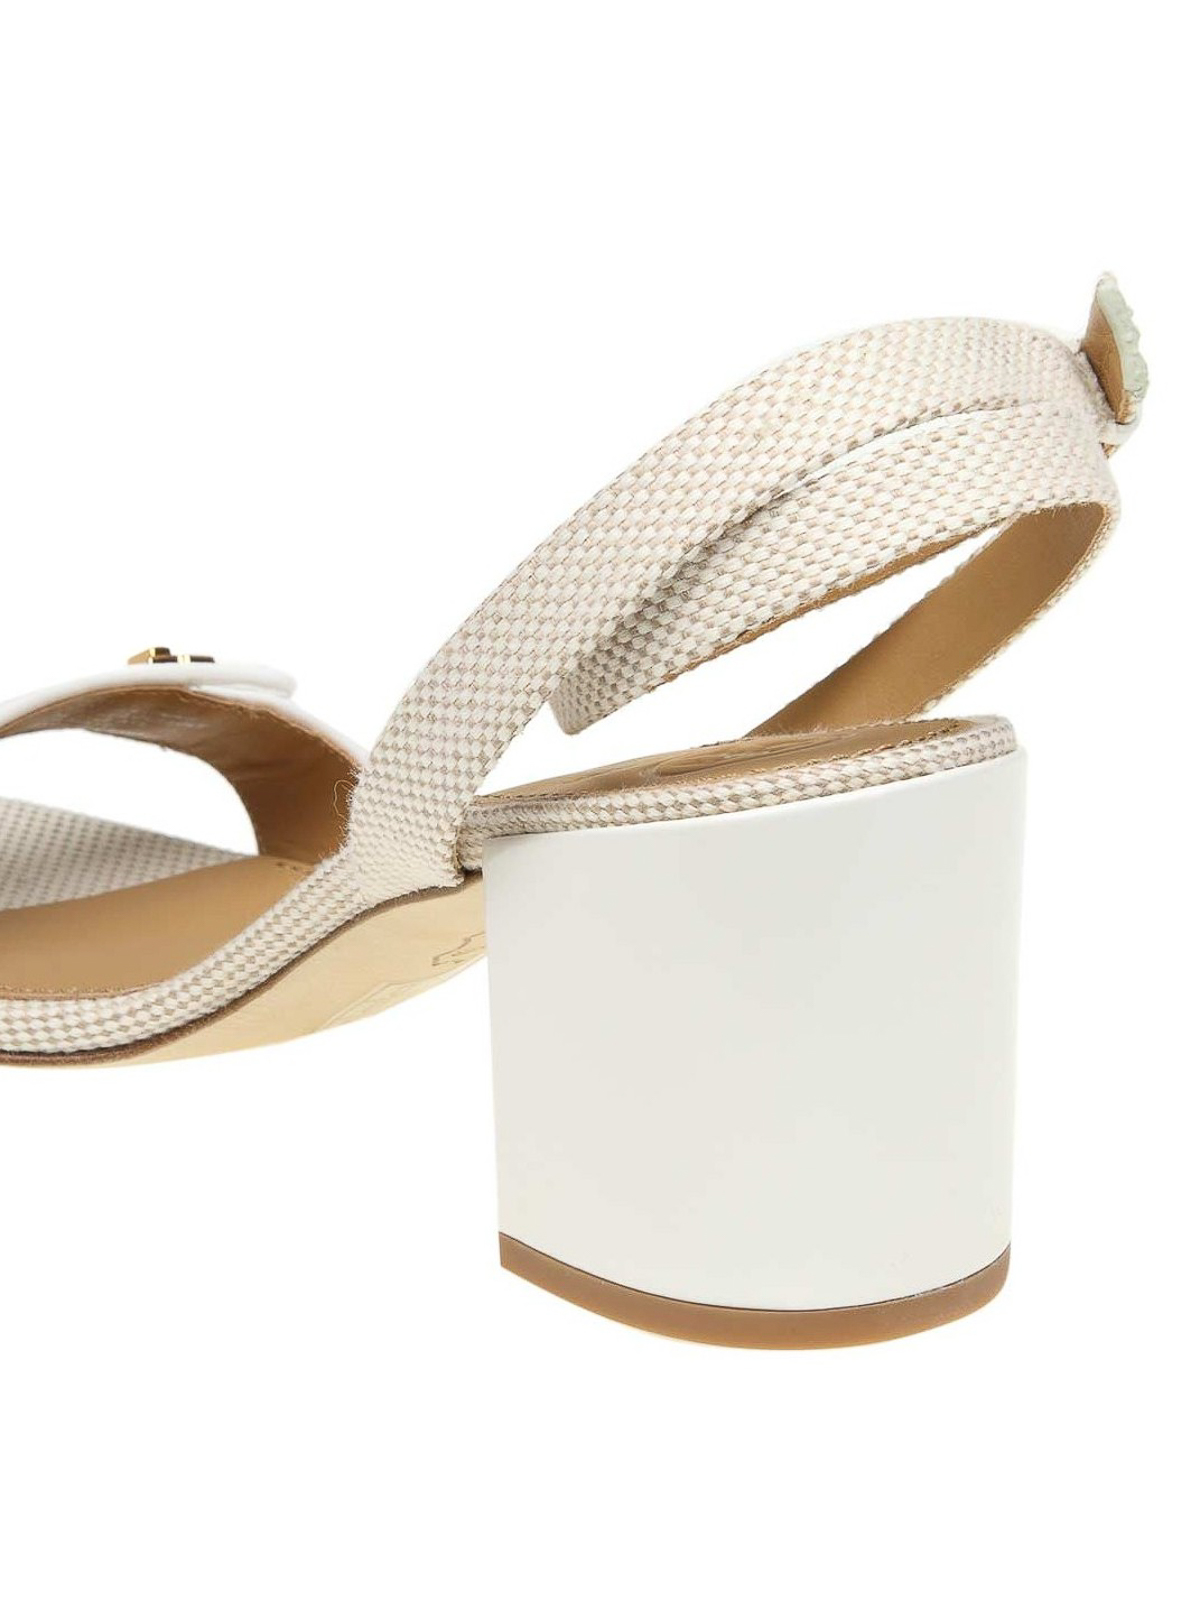 234cb52d0 Tory Burch - Kira canvas and leather sandals - sandals - 55518 263